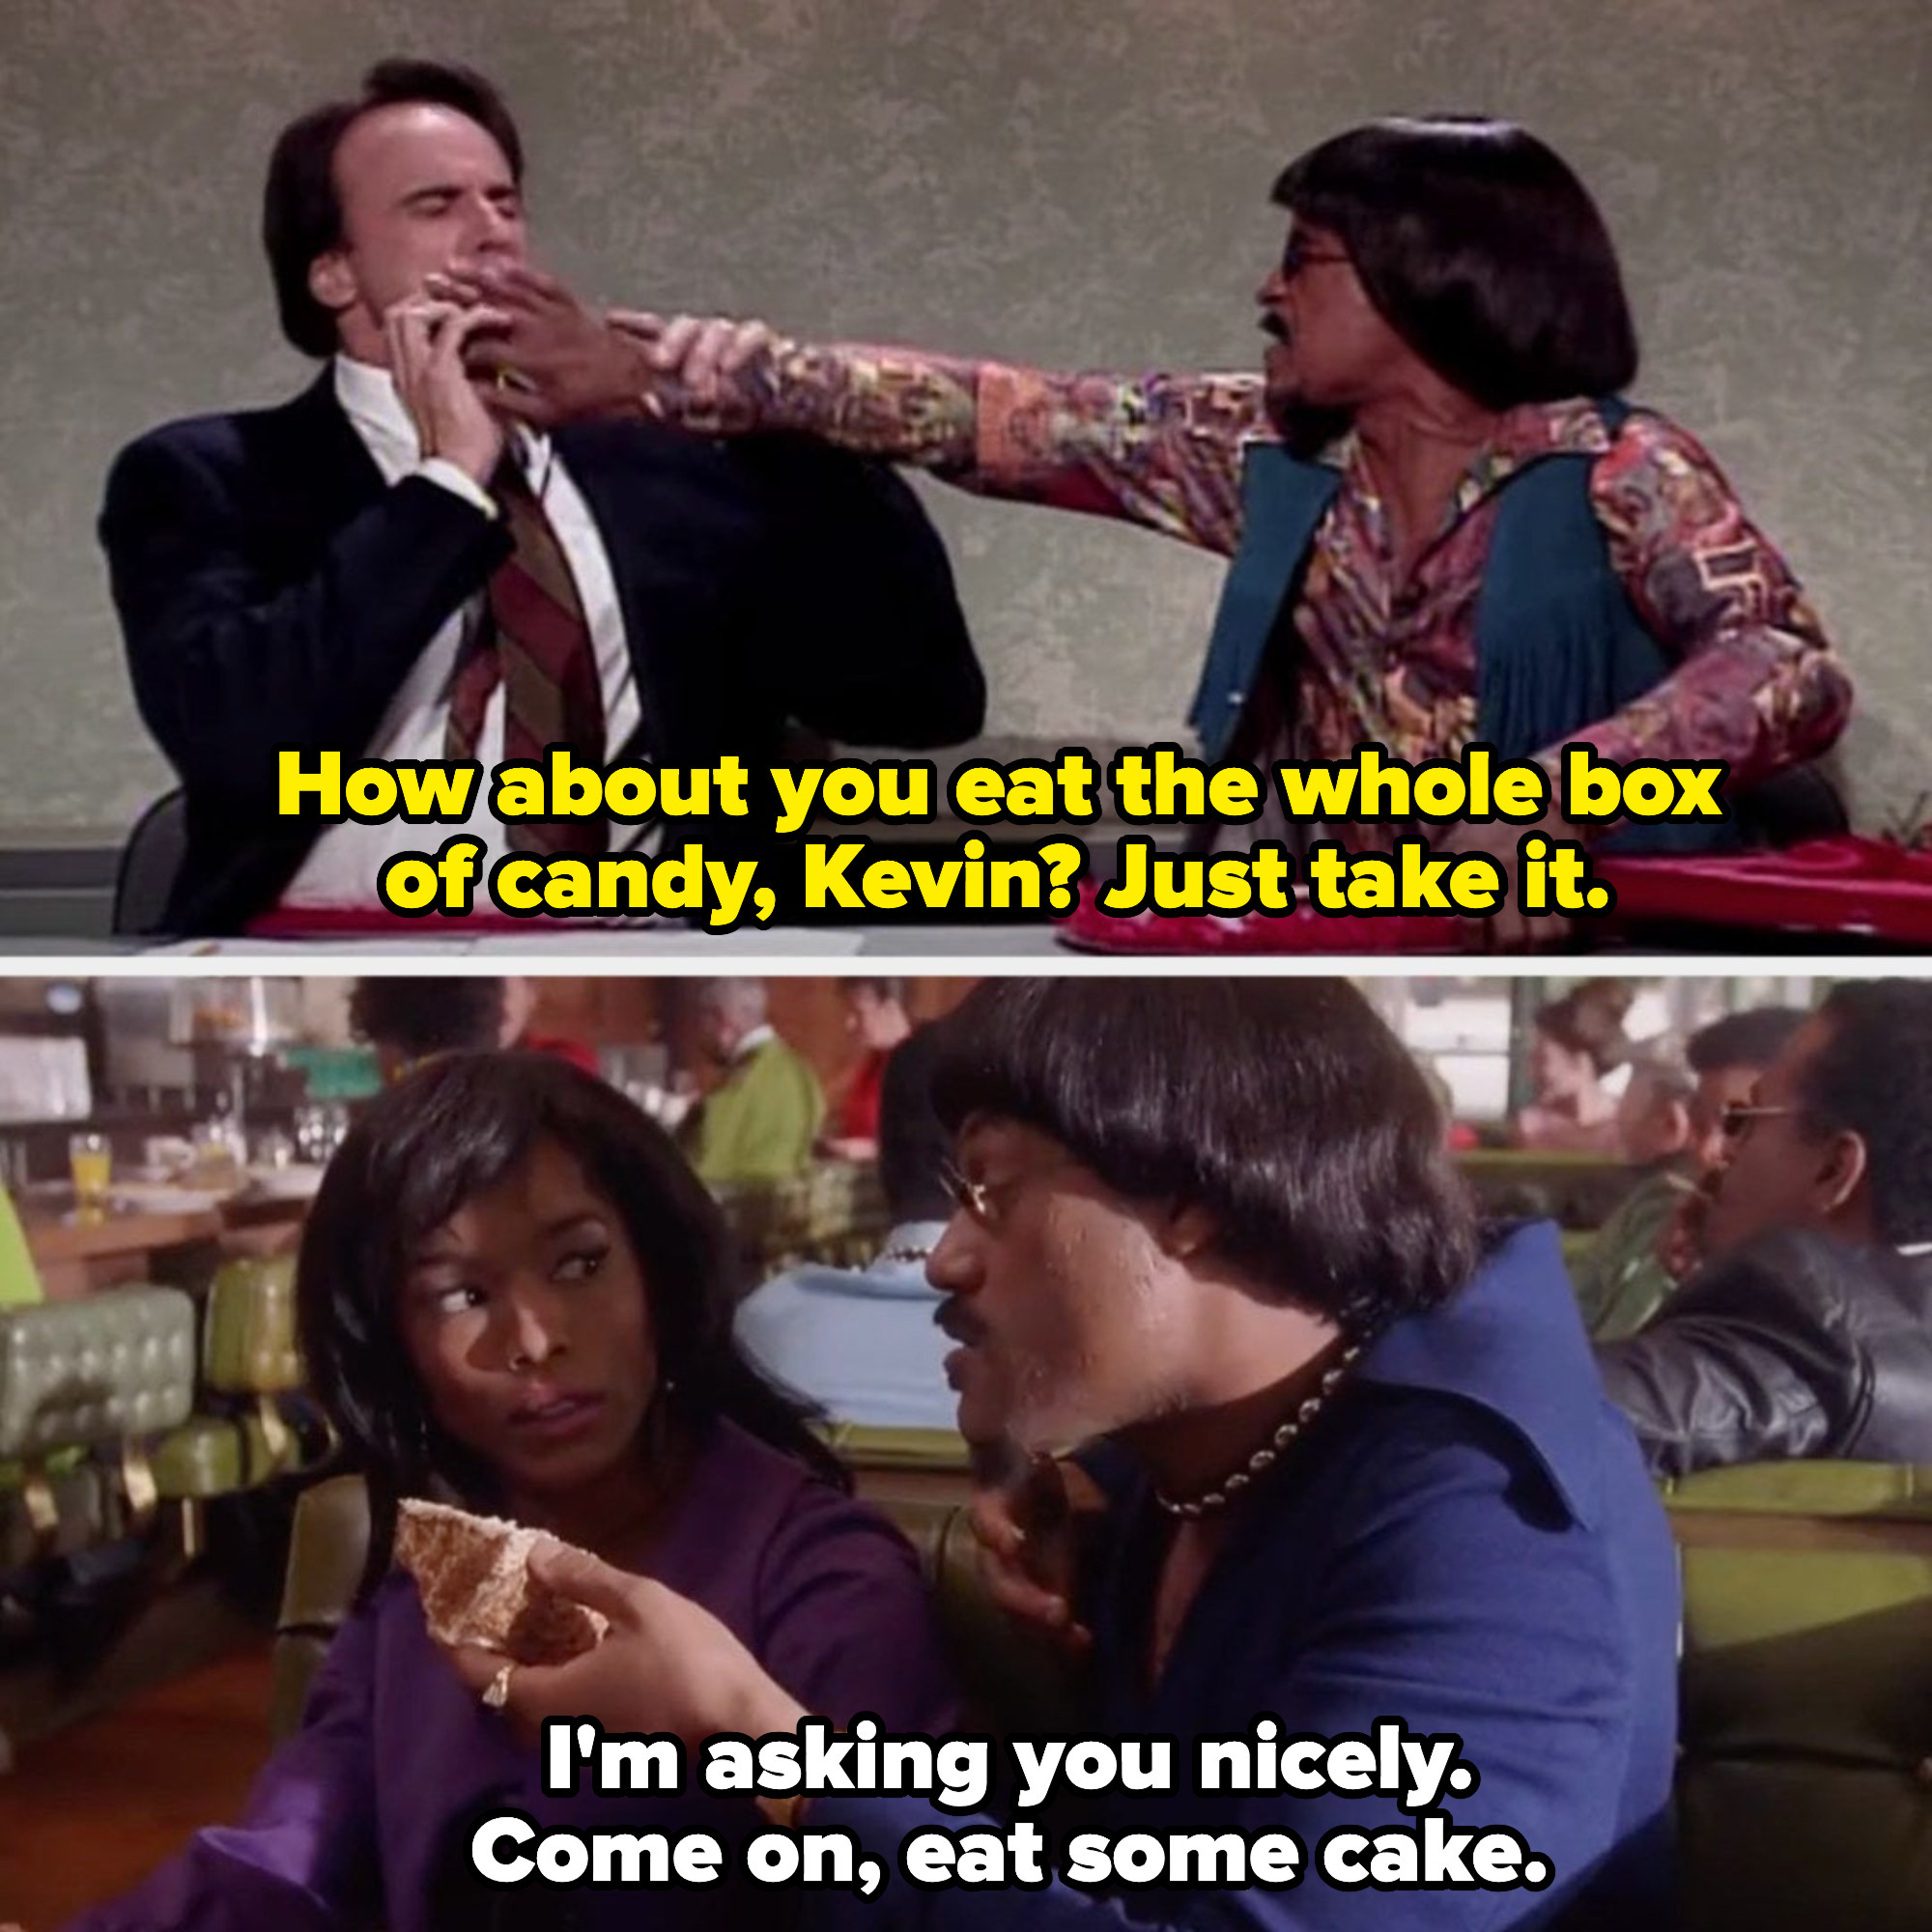 """Tim Meadows as Ike Turner shoving a box of candy in Kevin Nealon's face; Laurence Fishburne as Ike Turner in """"What's Love Got to Do with It"""" shoving cake in Tina Turner's mouth (played by Angela Bassett)"""